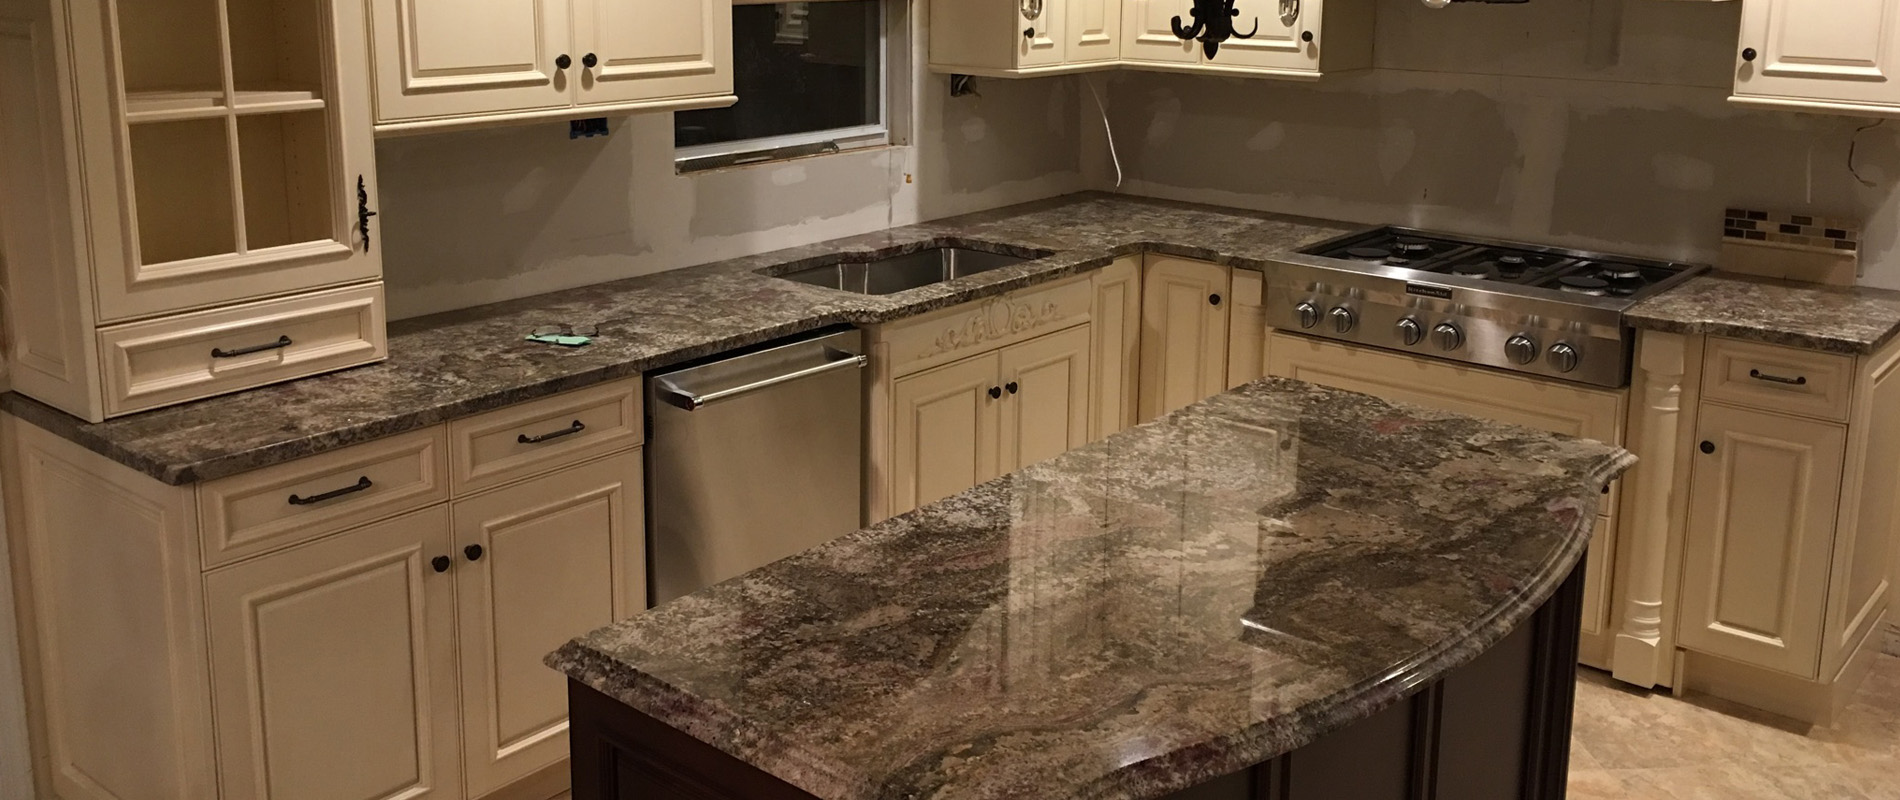 vanity ic jdc and top granite stone stoneworks countertop bathroom countertops